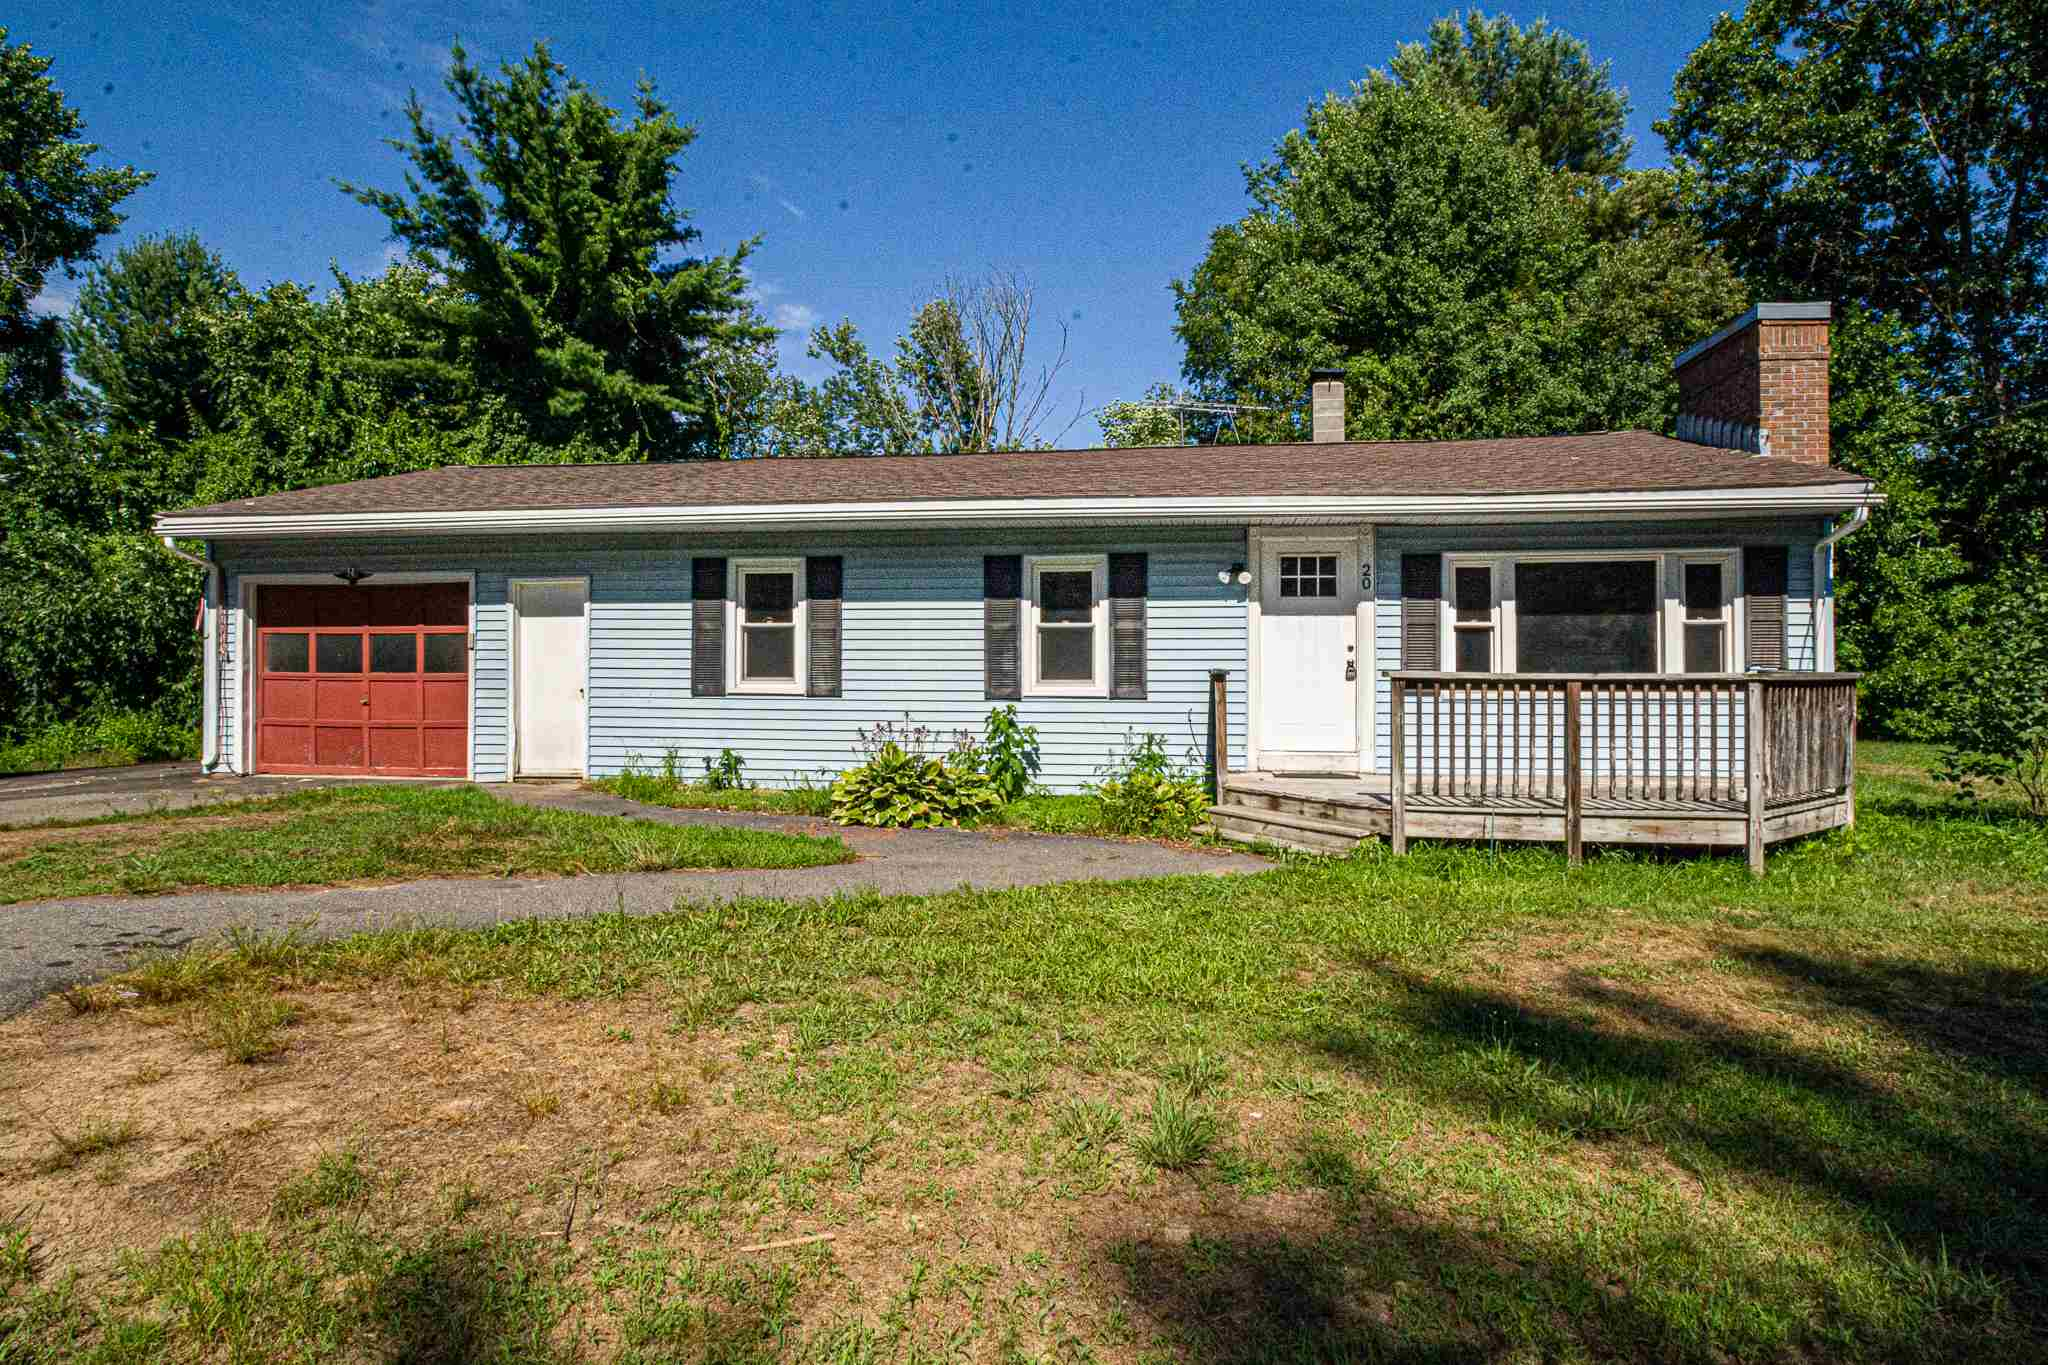 MLS 4819666: 20 London Bridge Road, Windham NH